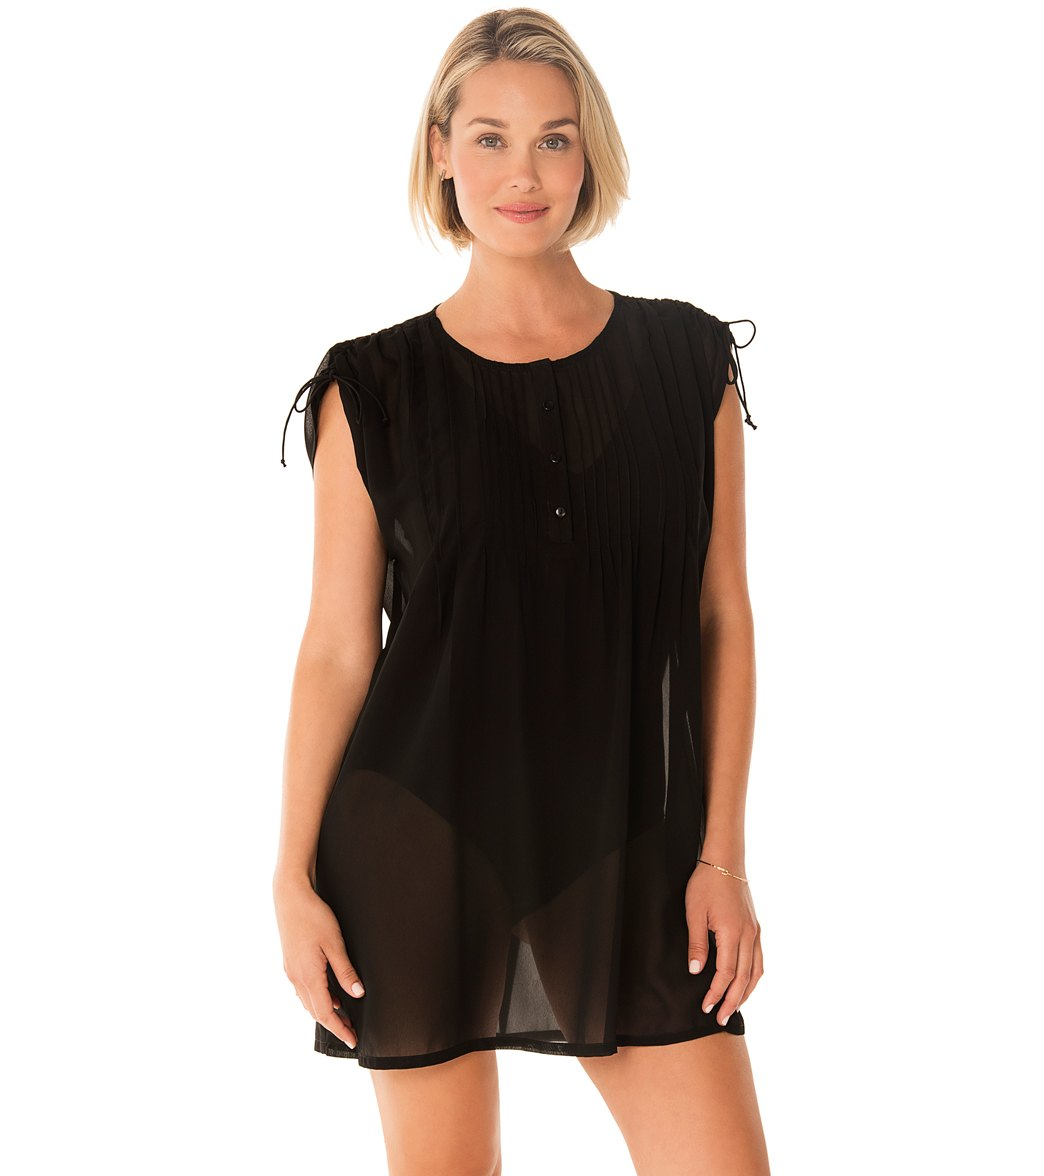 9f4821263df84 Penbrooke Take Cover Poly Georgette Adjustable Shoulder Cover Up Dress at  SwimOutlet.com